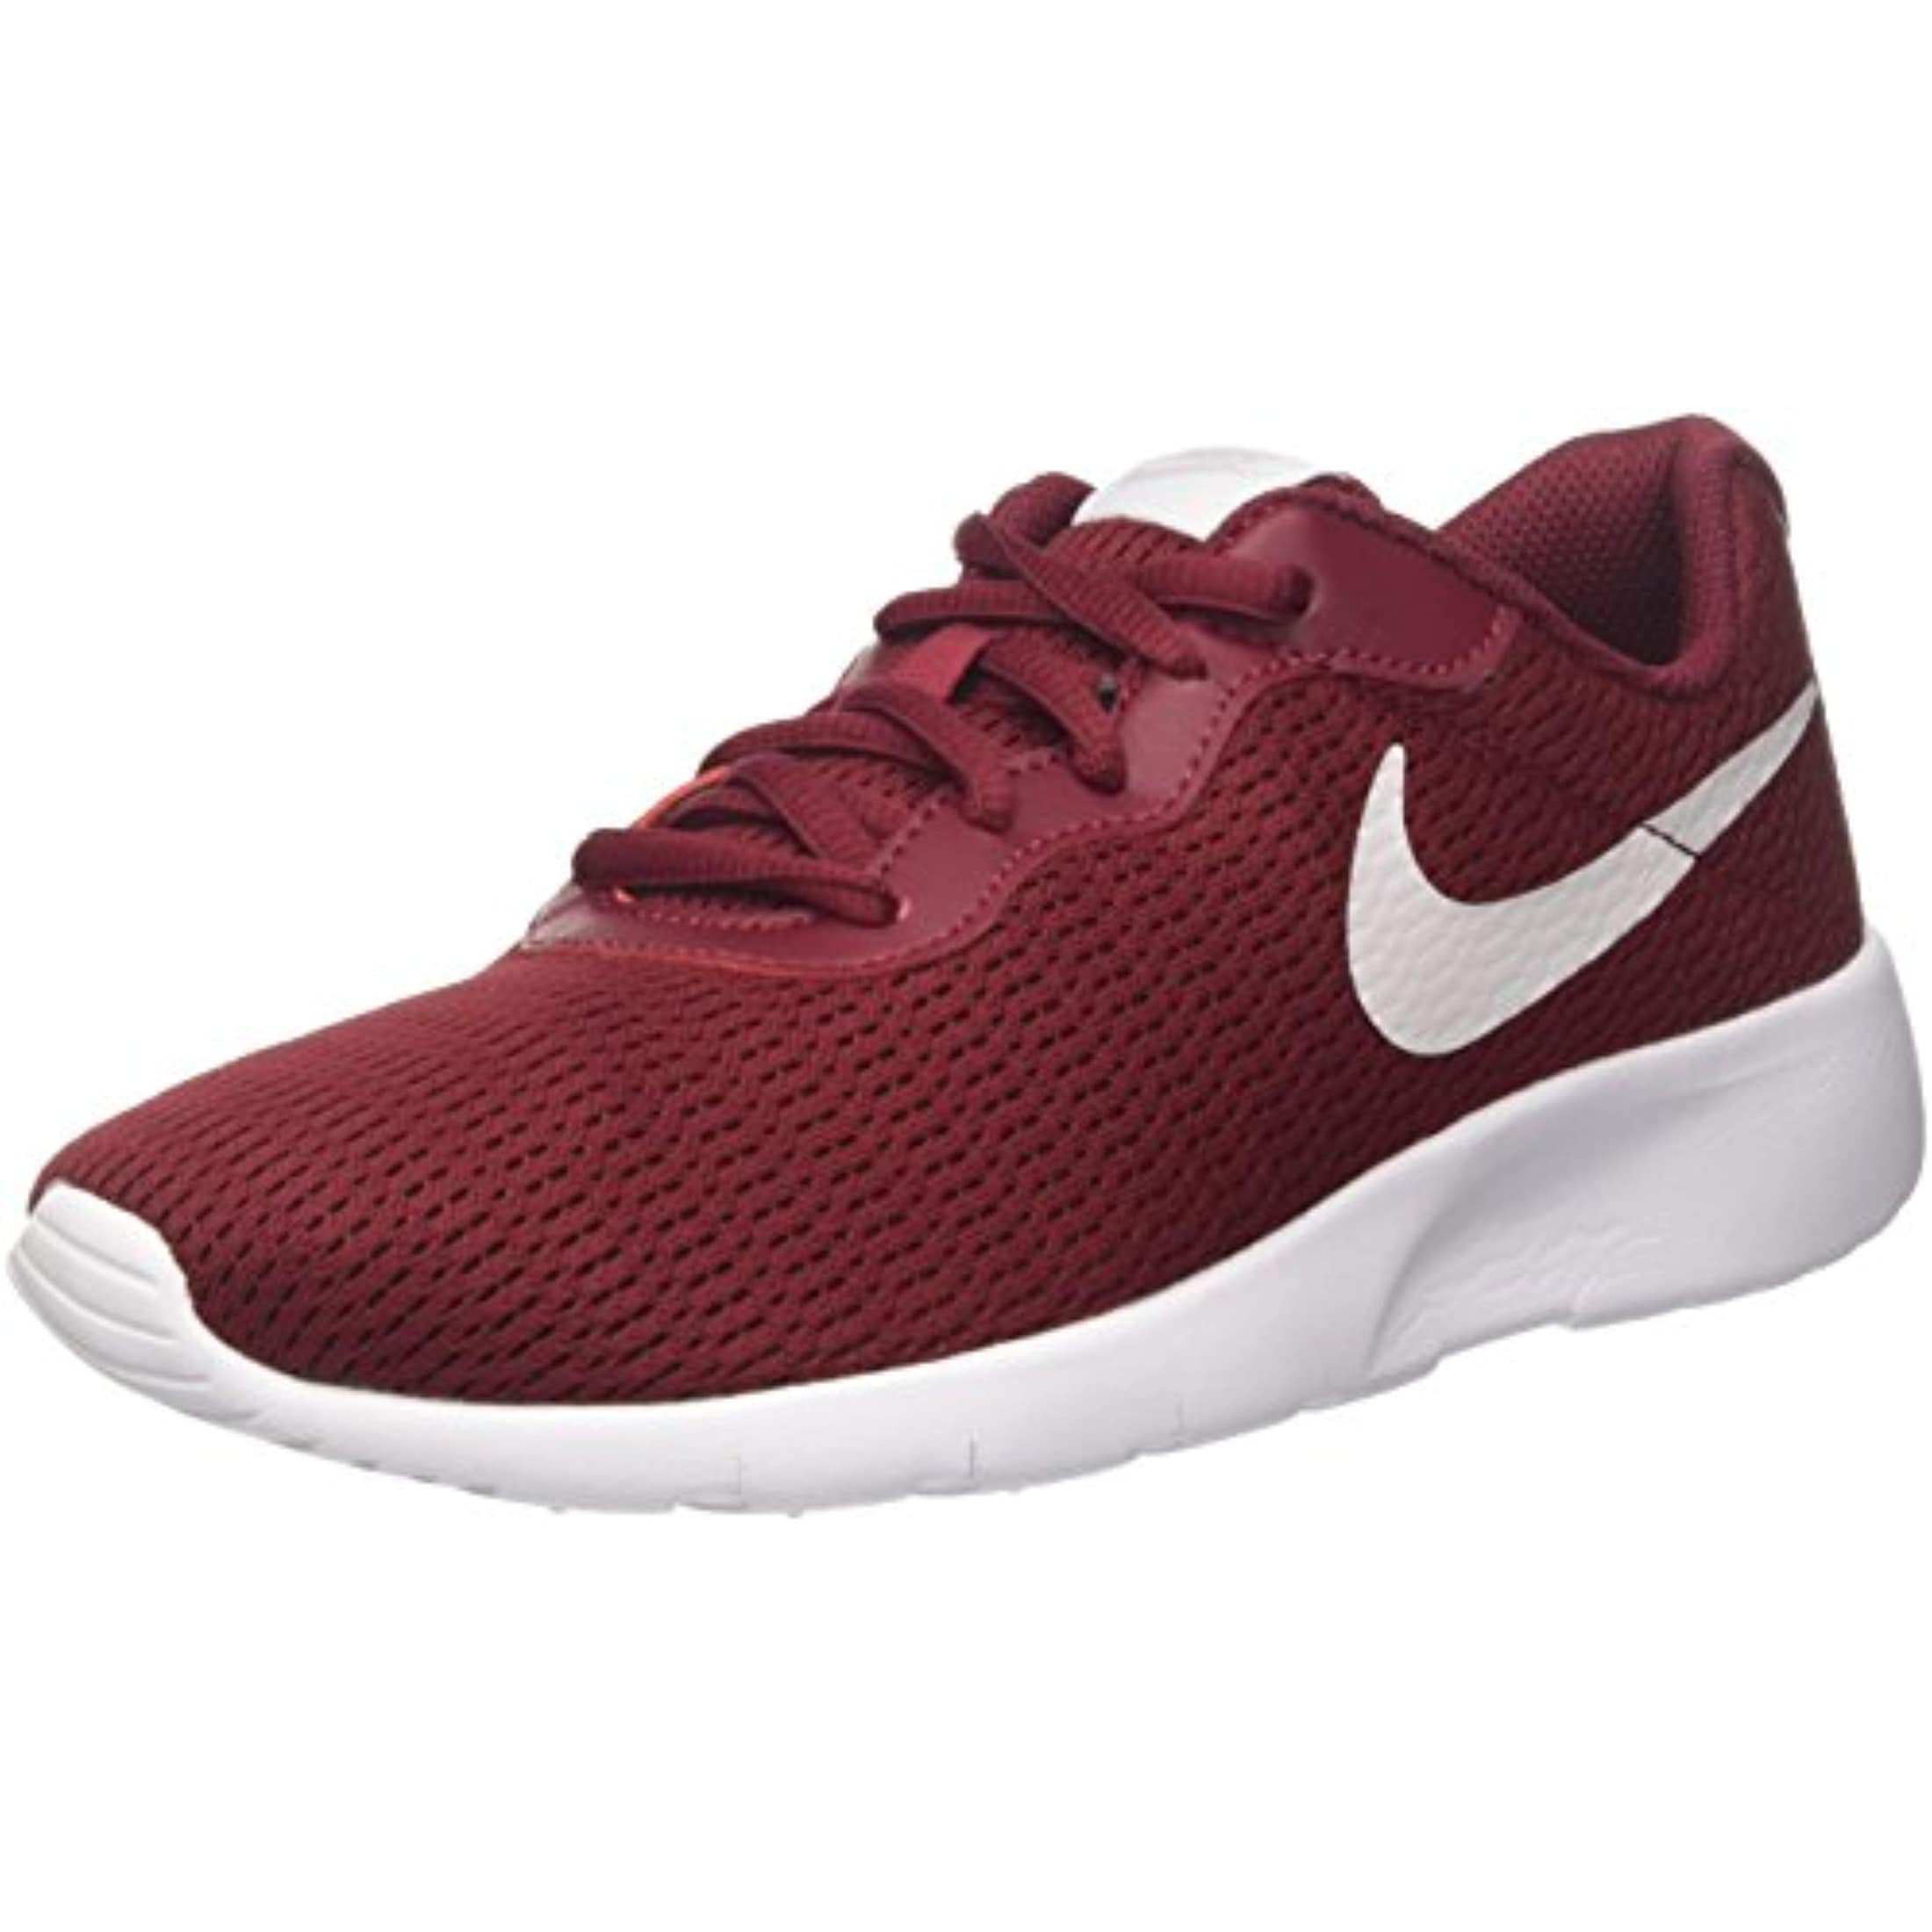 Shop Nike Kids Tanjun (Gs) Team Red Vast Grey White Size 7 - Free Shipping  Today - Overstock.com - 26432943 81690a0dcc